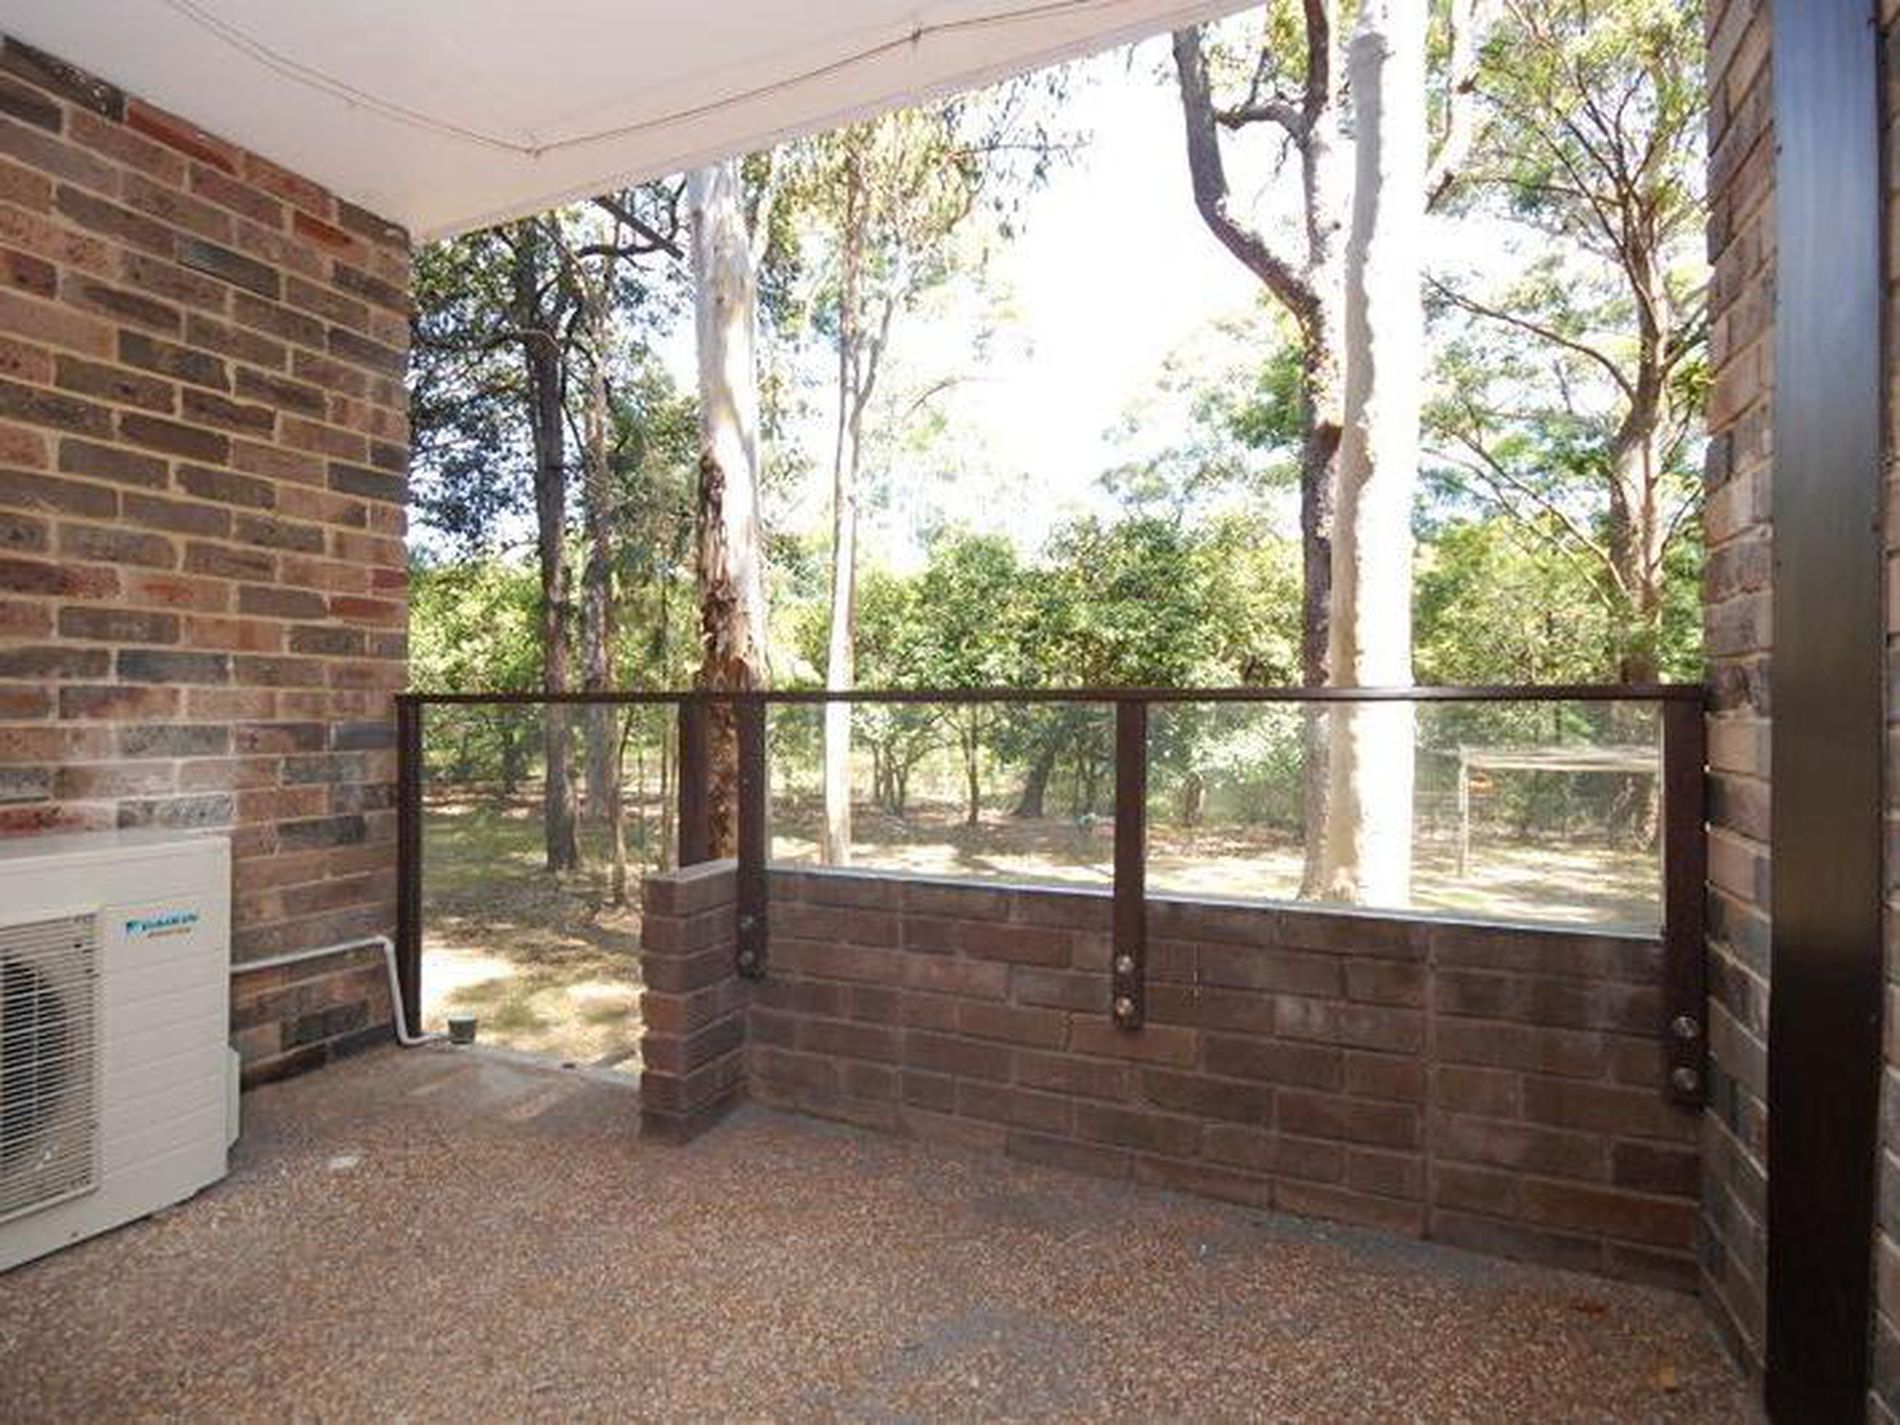 11 / 31 Fontenoy Road, Macquarie Park